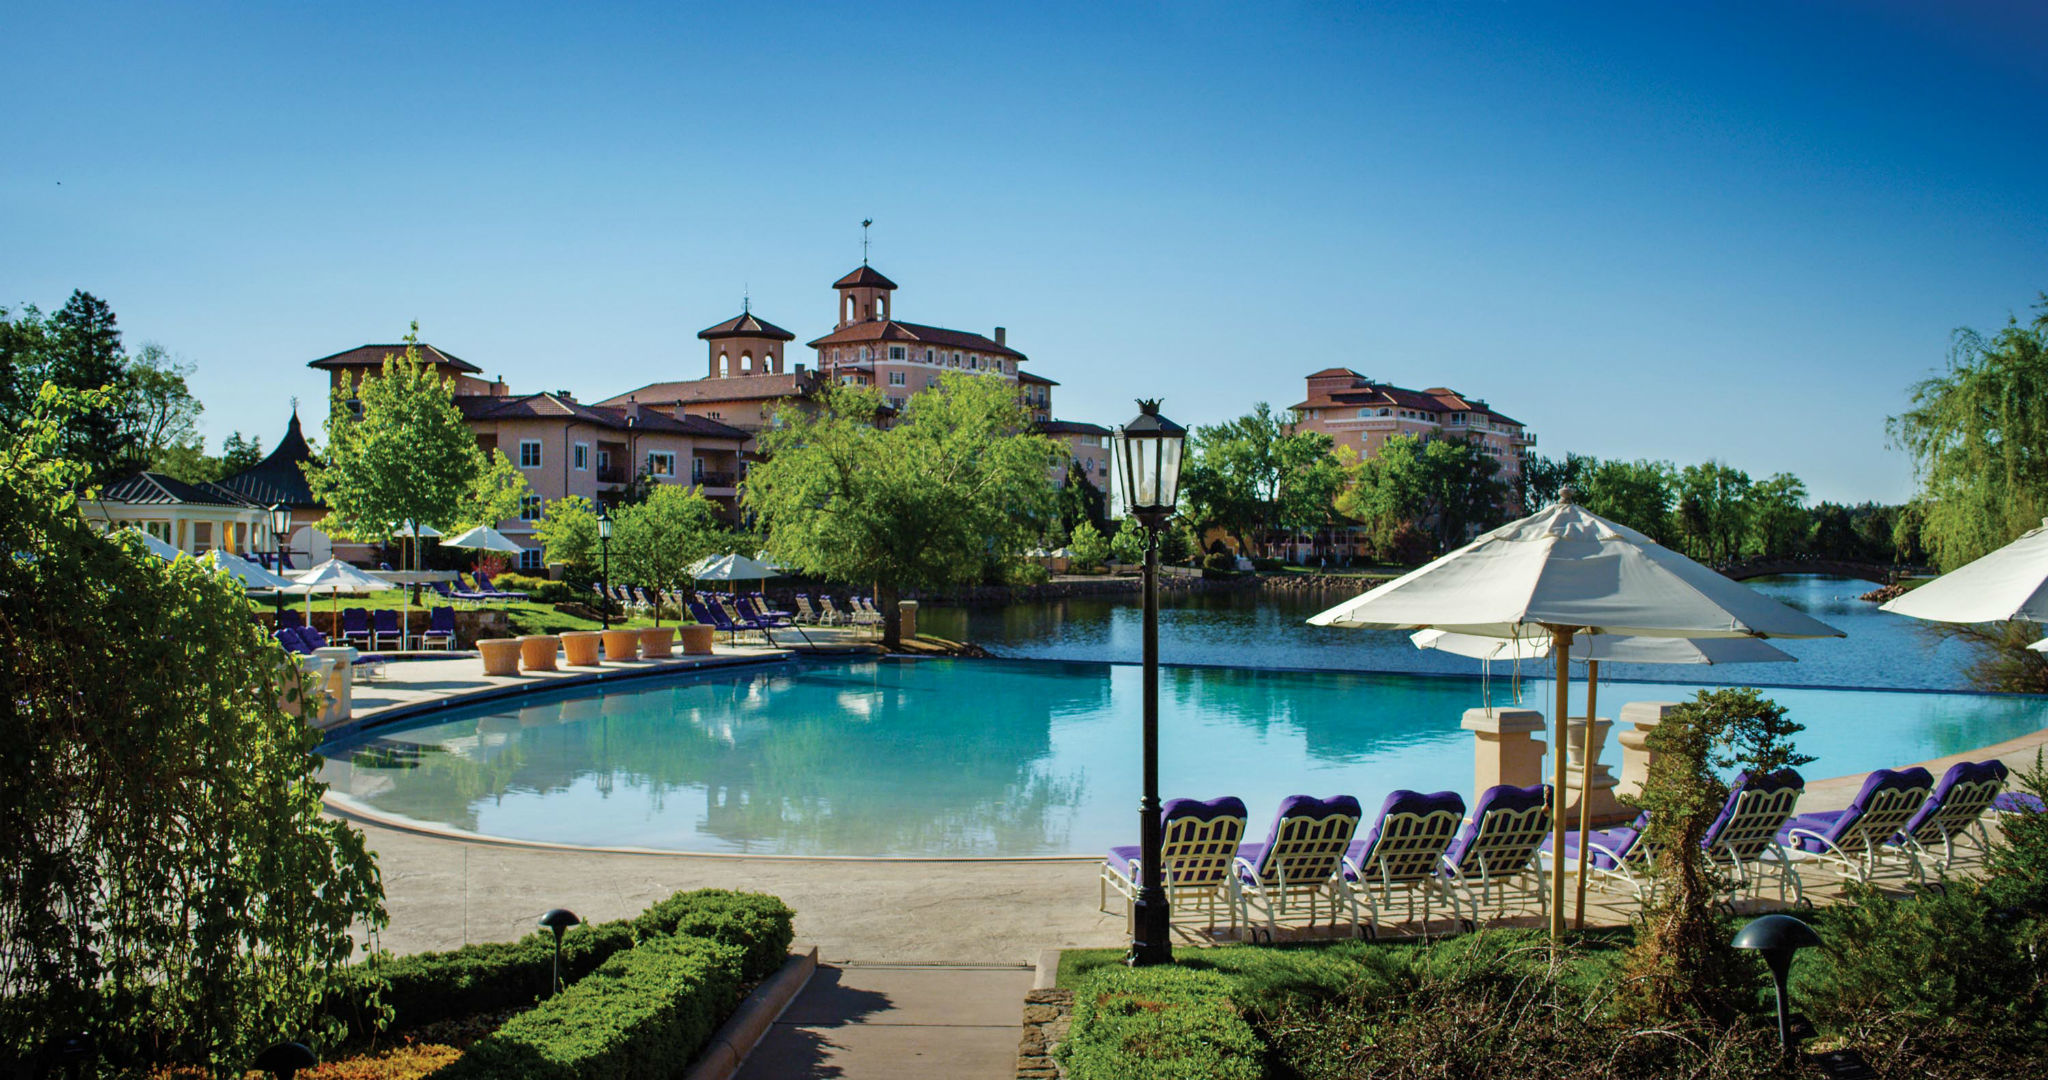 The Broadmoor, Colorado